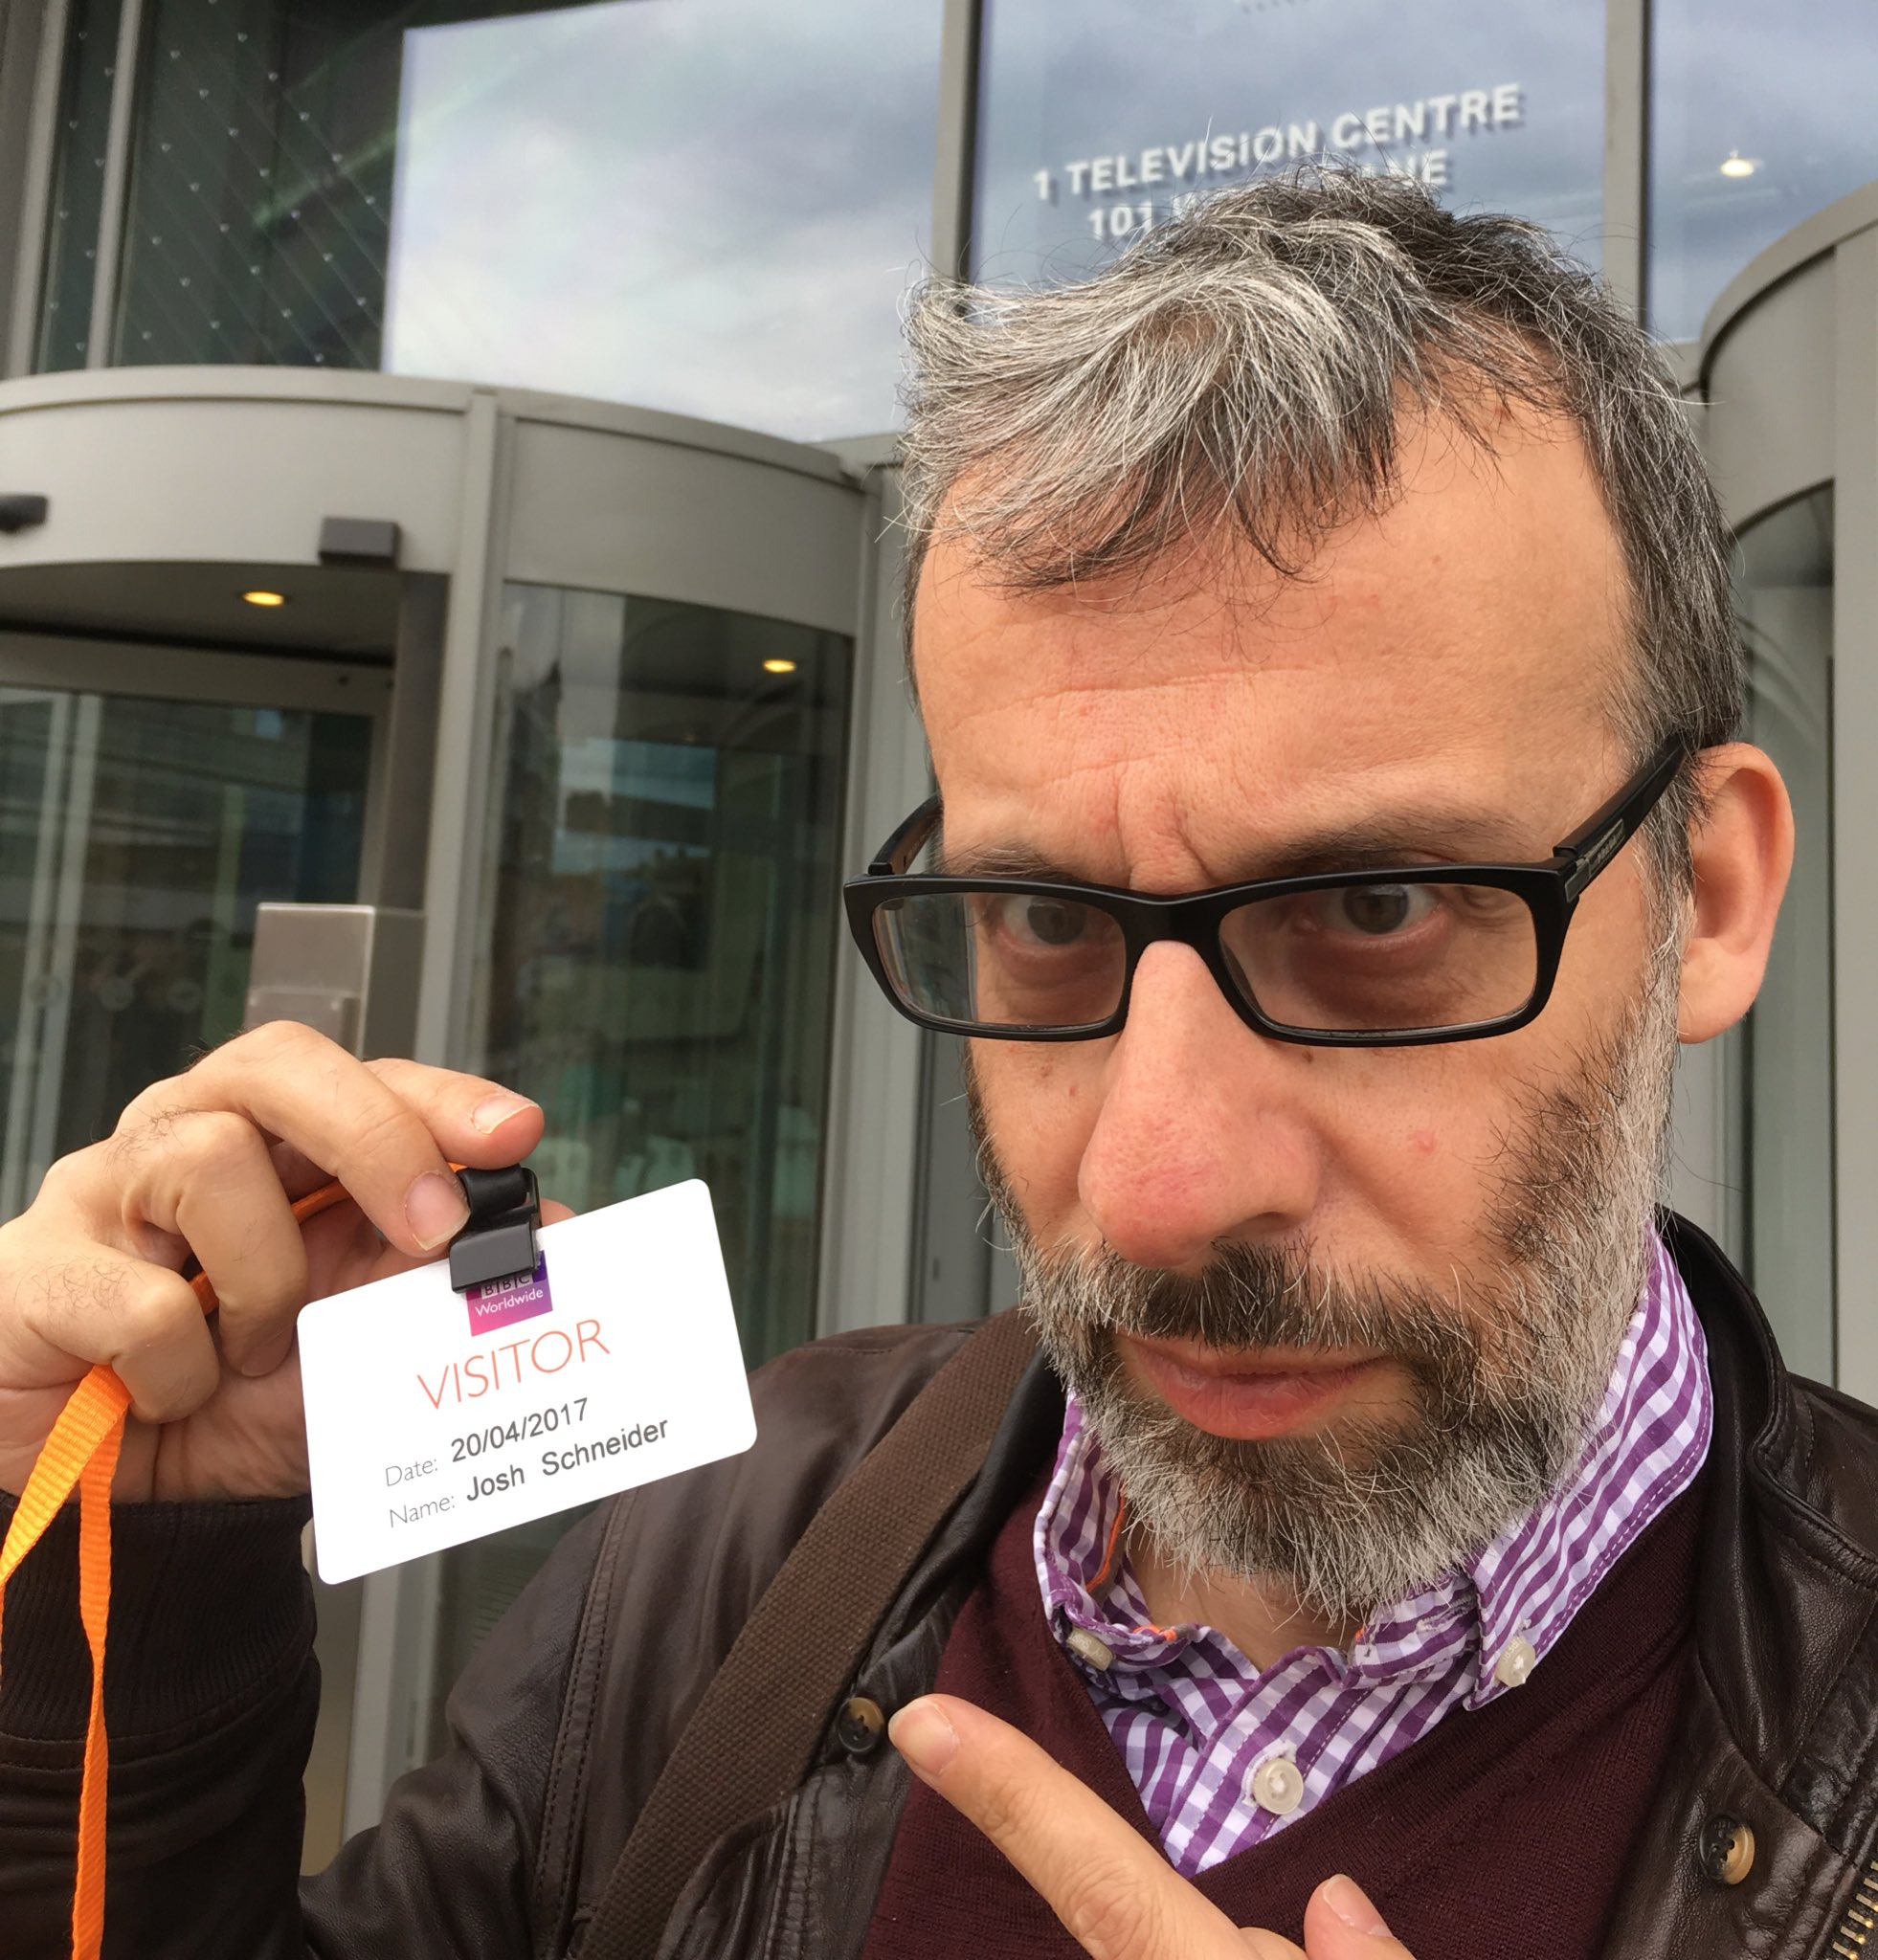 *arrives at BBC* Yes, I'm David Schneider, director of the sitcom Josh. You may have heard of me... https://t.co/81x4Pqk4mf